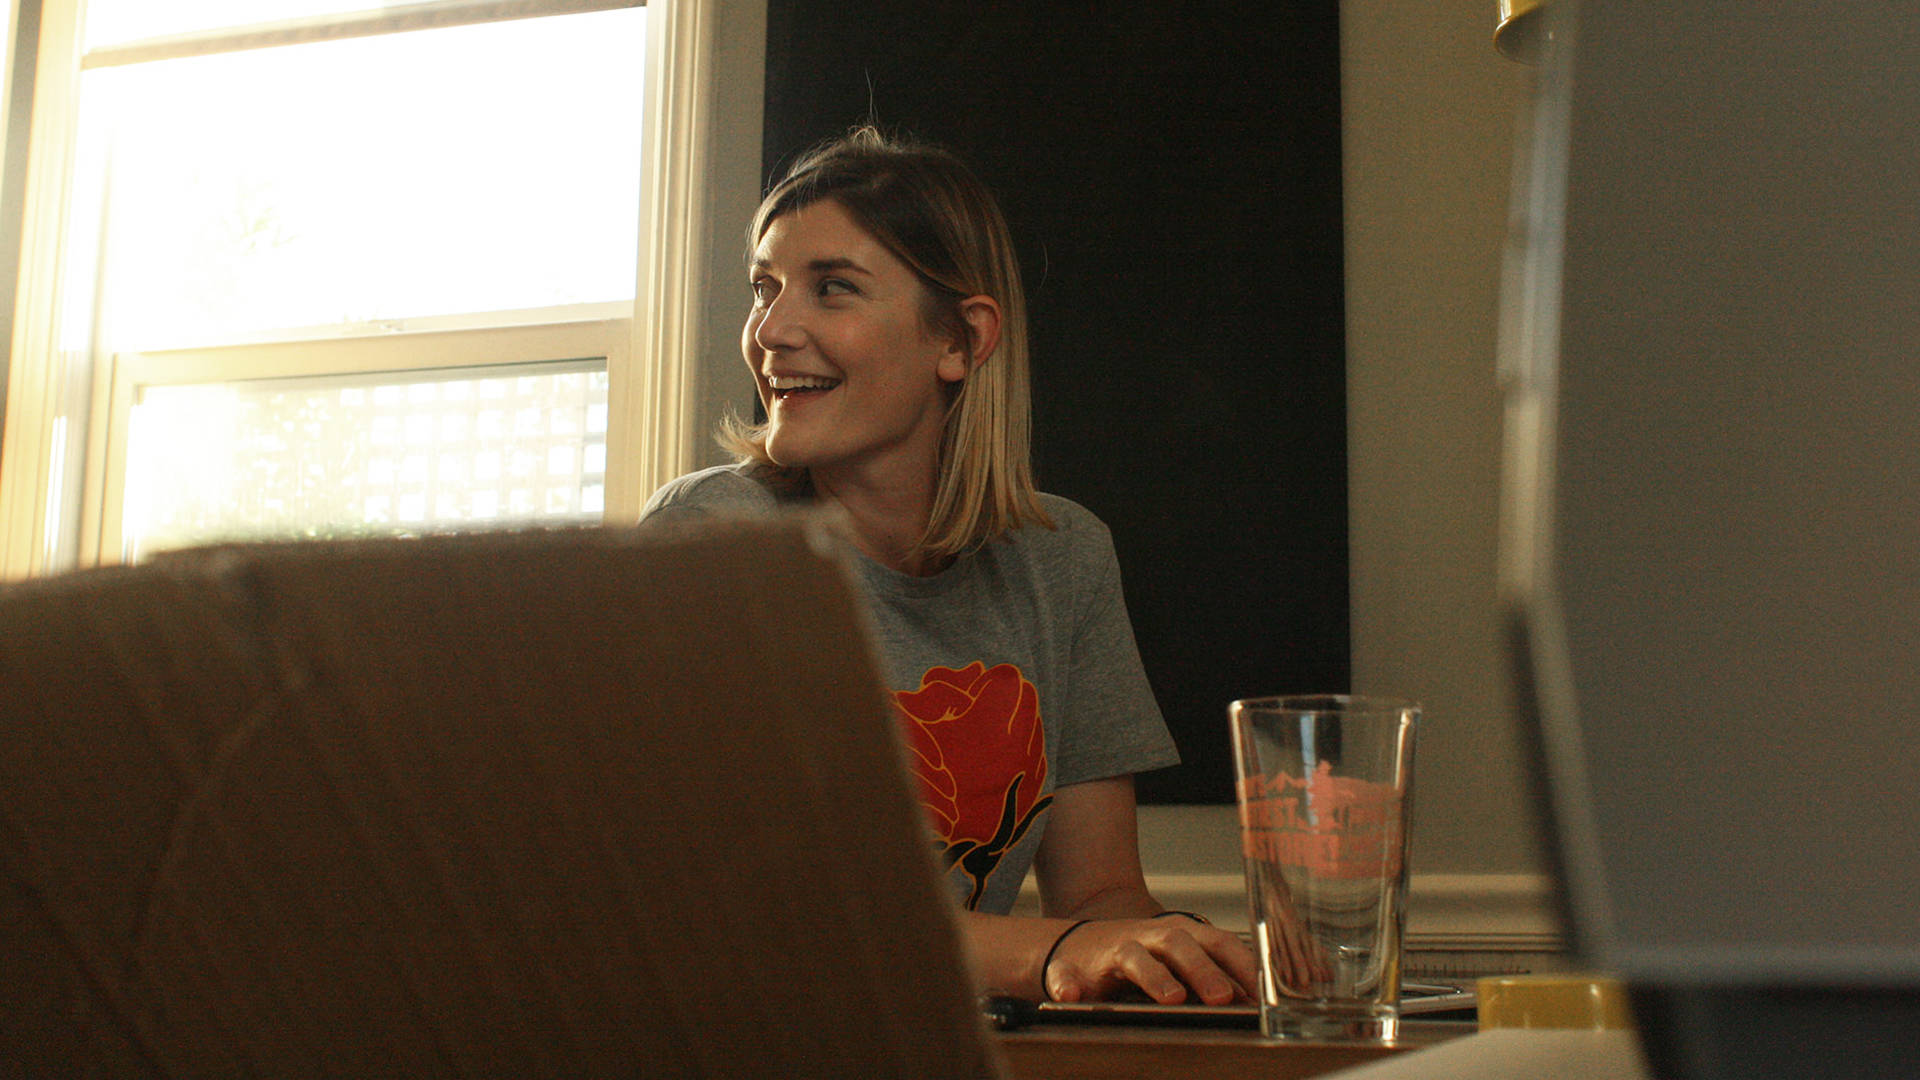 Illustrator Mikayla Butchart wearing one of her 'Rose-ilience' t-shirts in her Santa Rosa home studio.